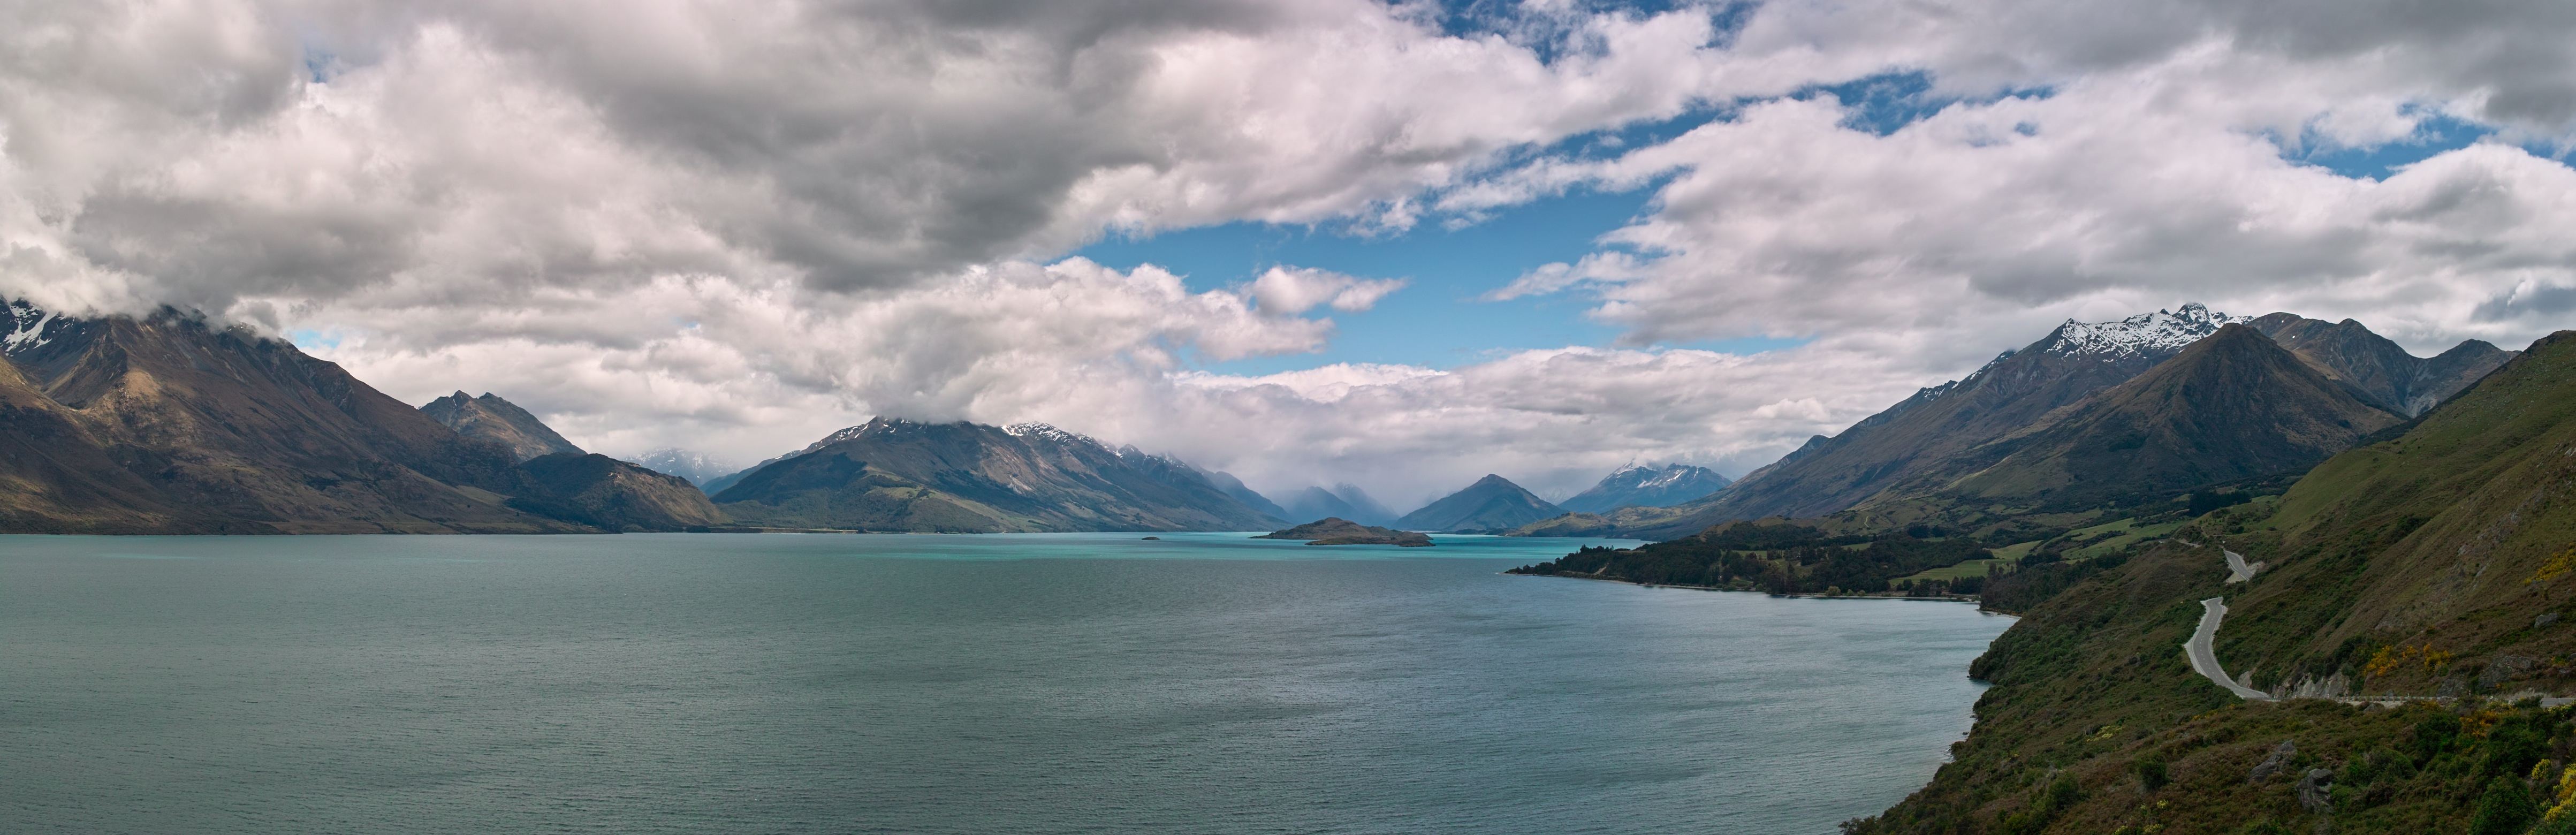 Lake Wakatipu from the Glenorchy-Queenstown Road